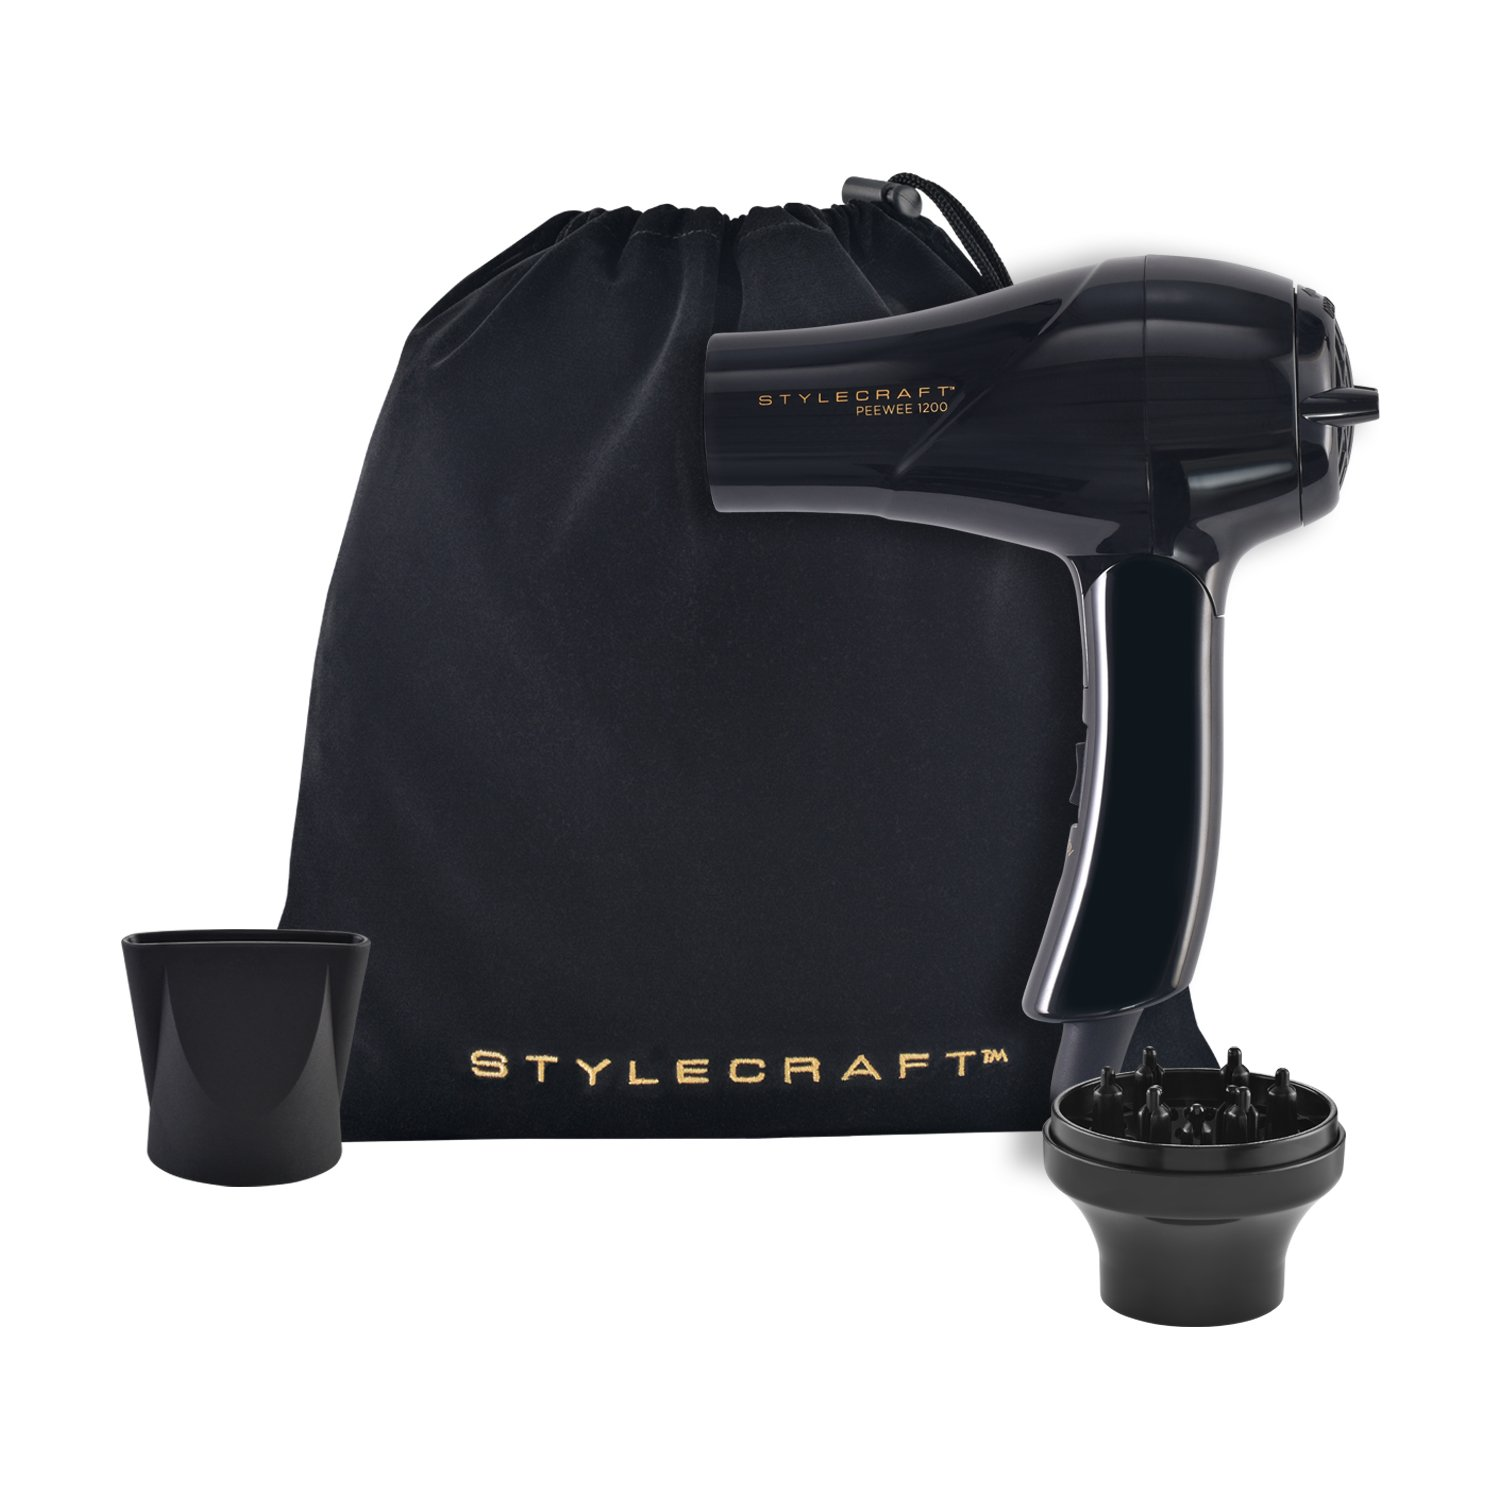 StyleCraft PeeWee 1200 Dual Voltage Folding Handle Travel Dryer | Includes: Travel Bag, Nozzle & Diffuser Black by StyleCraft